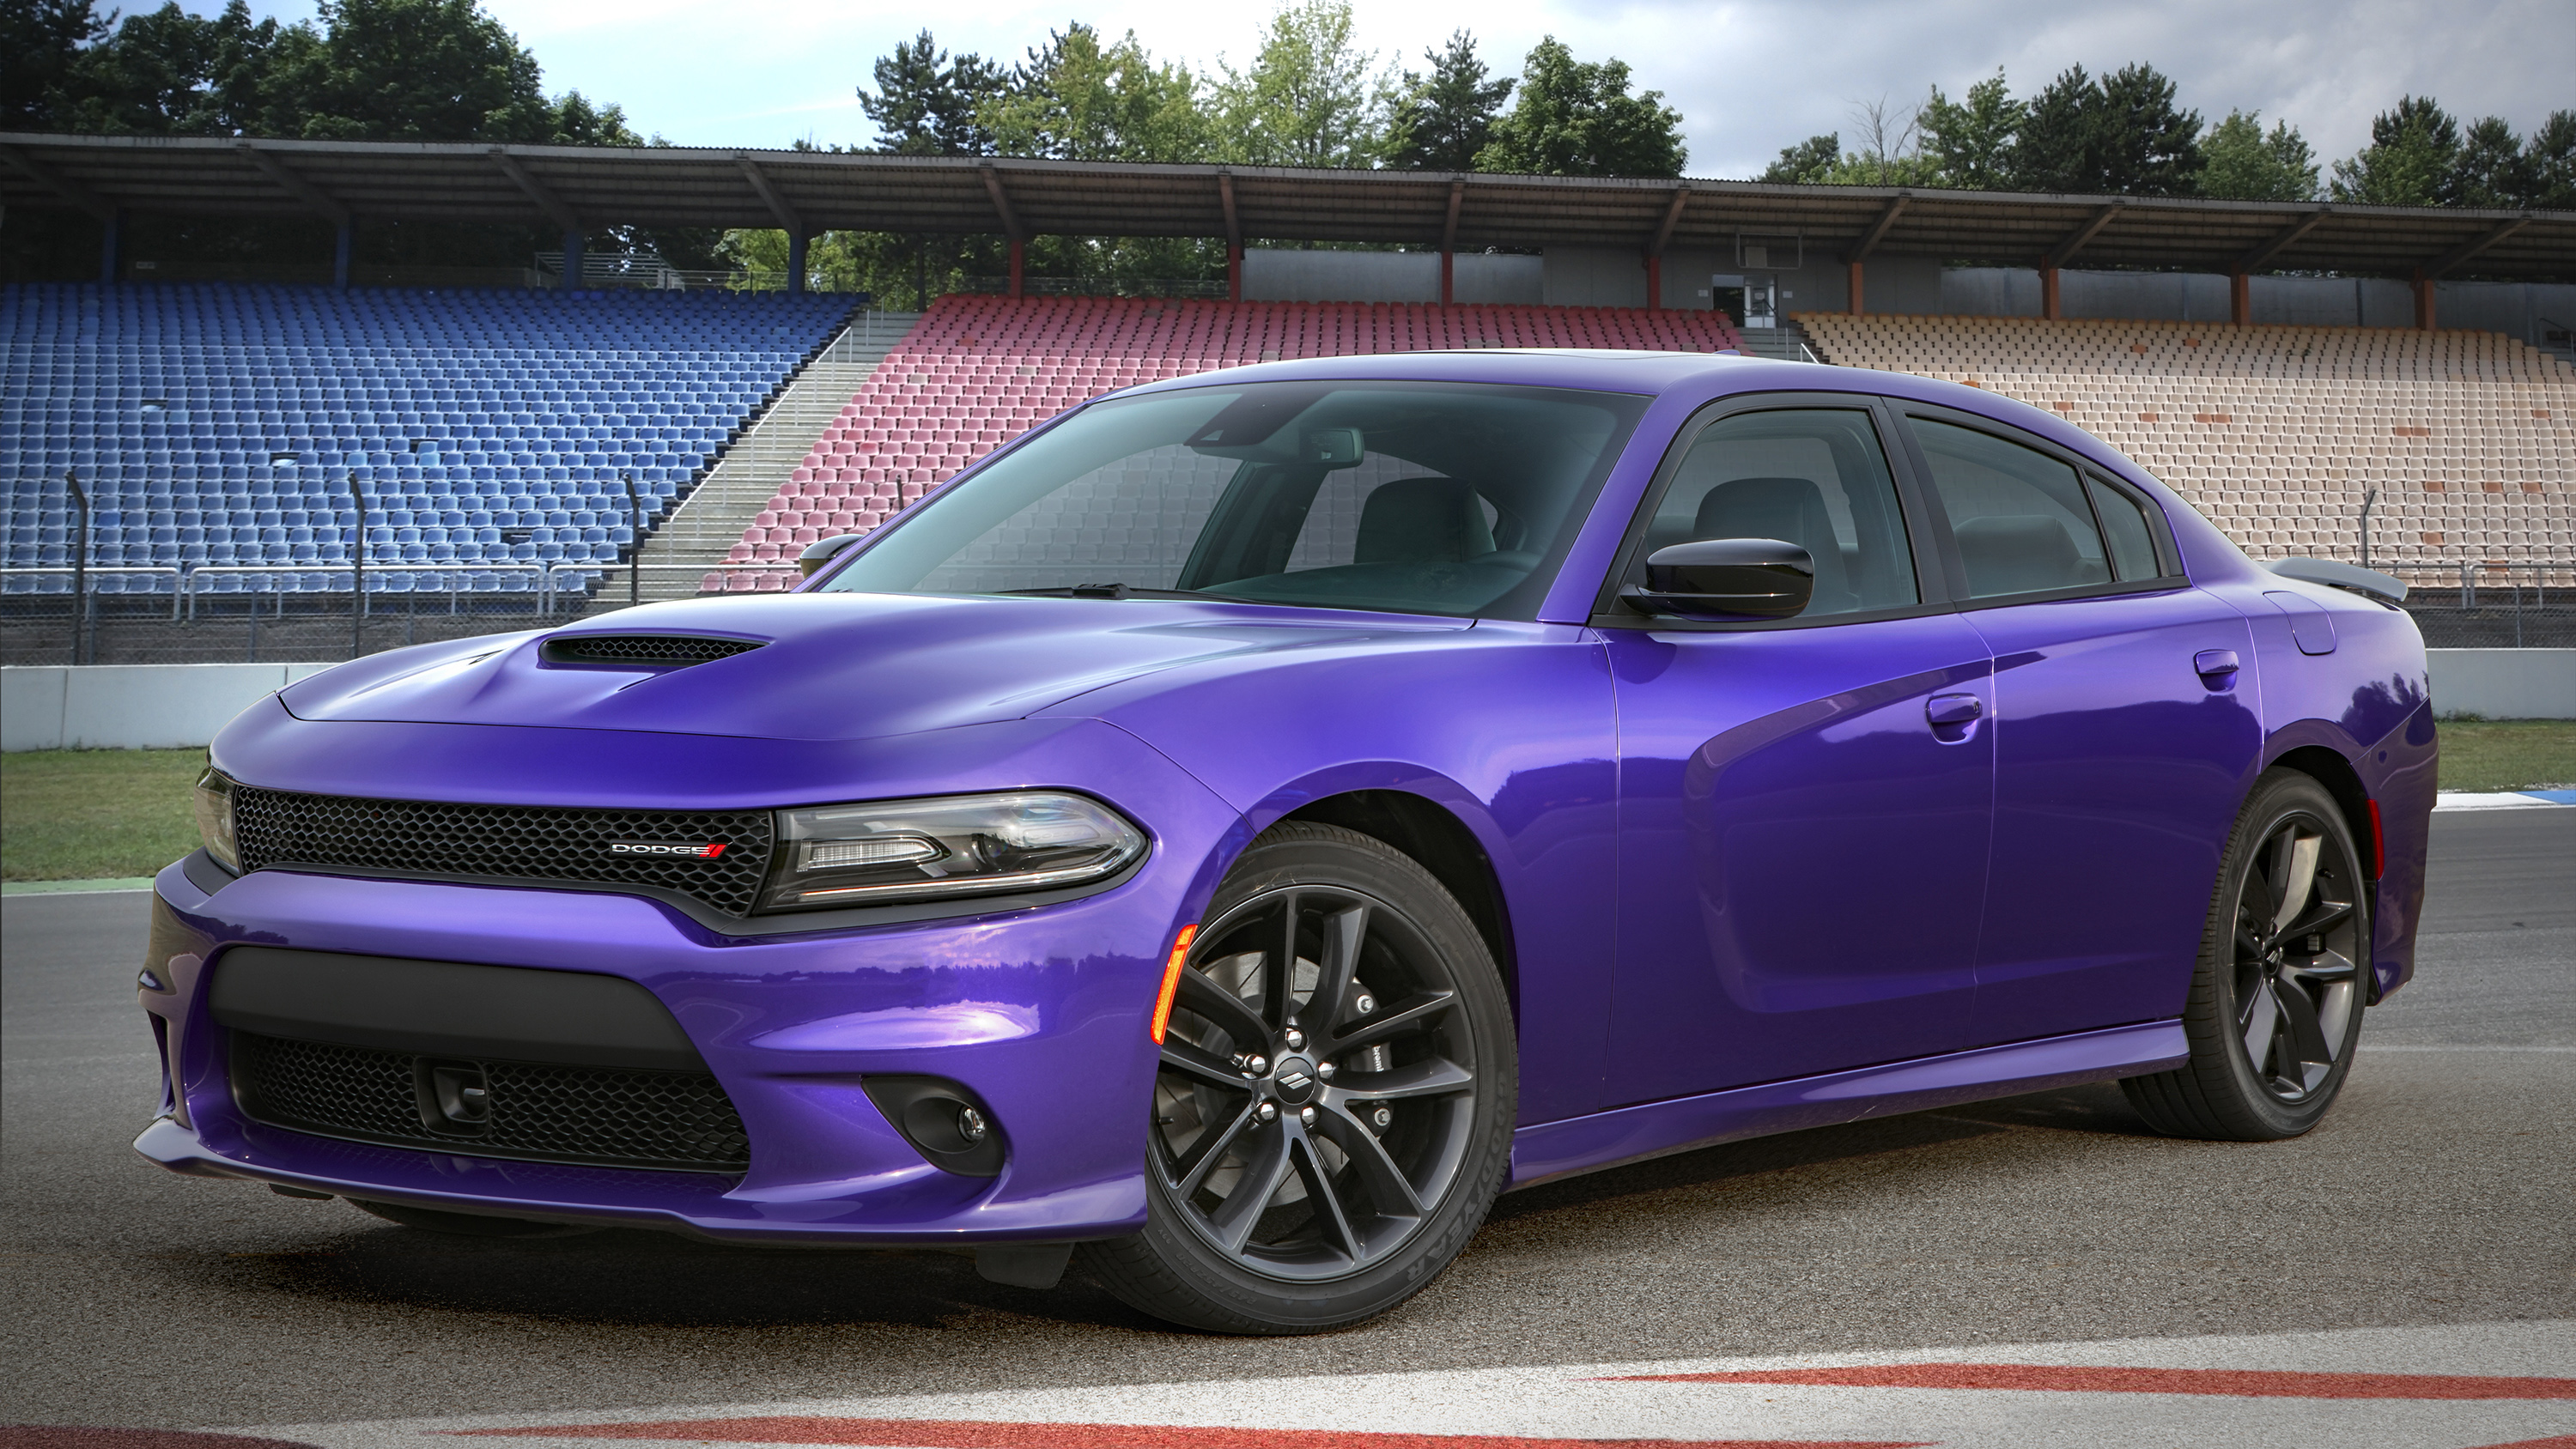 2019 Dodge Charger Gt Wallpaper Hd Car Wallpapers Id 11184